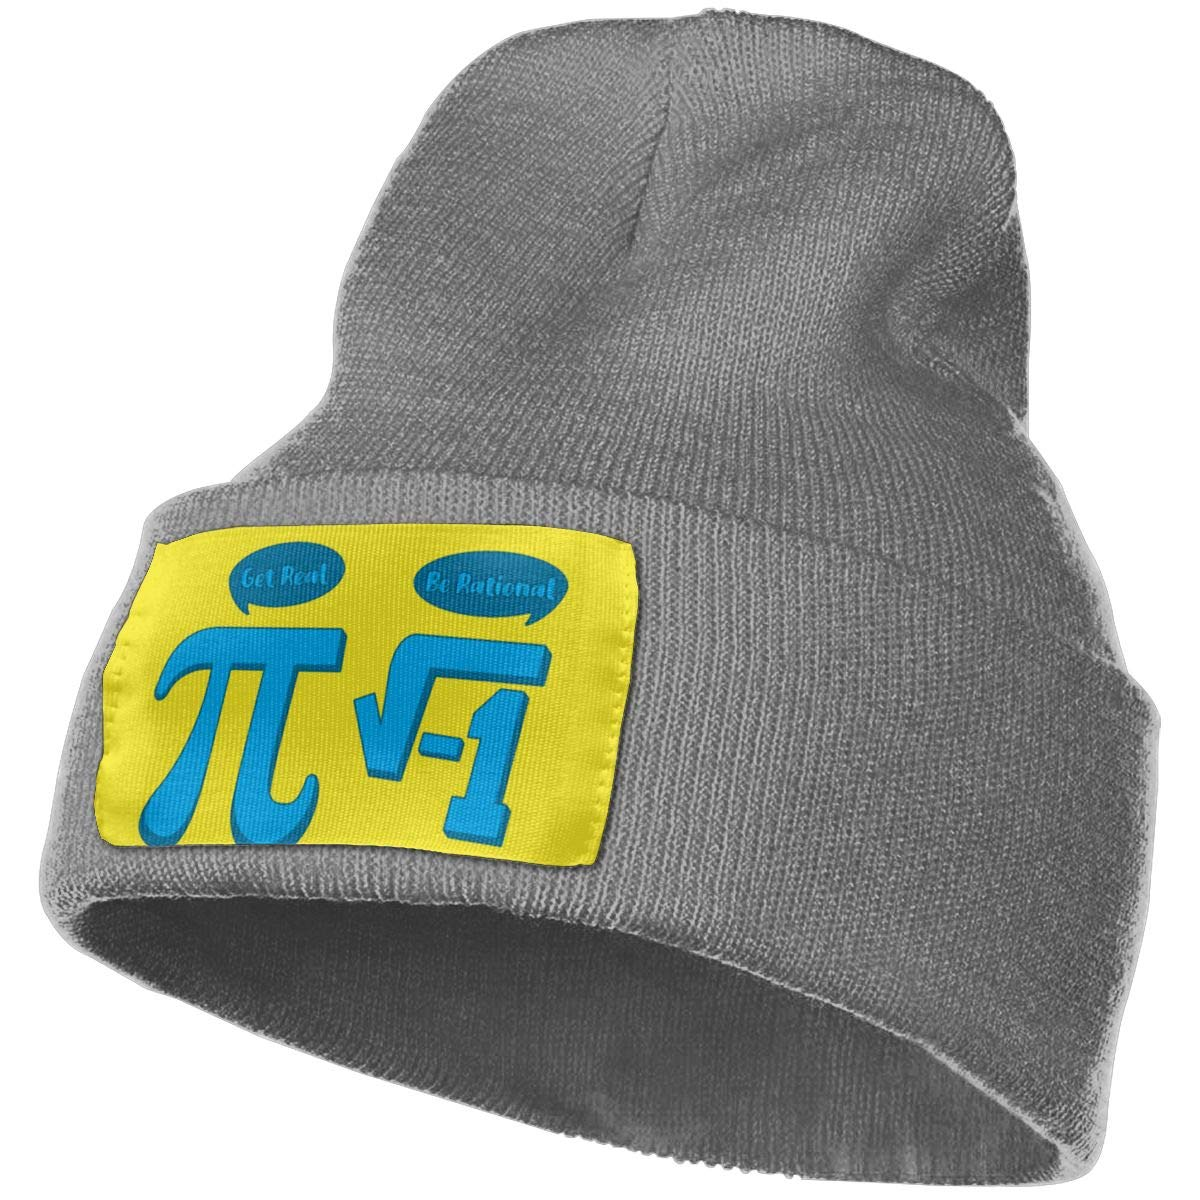 Get Real Be Rational 3 Wool Cap Beanie Hats Unisex Winter Deep Heather